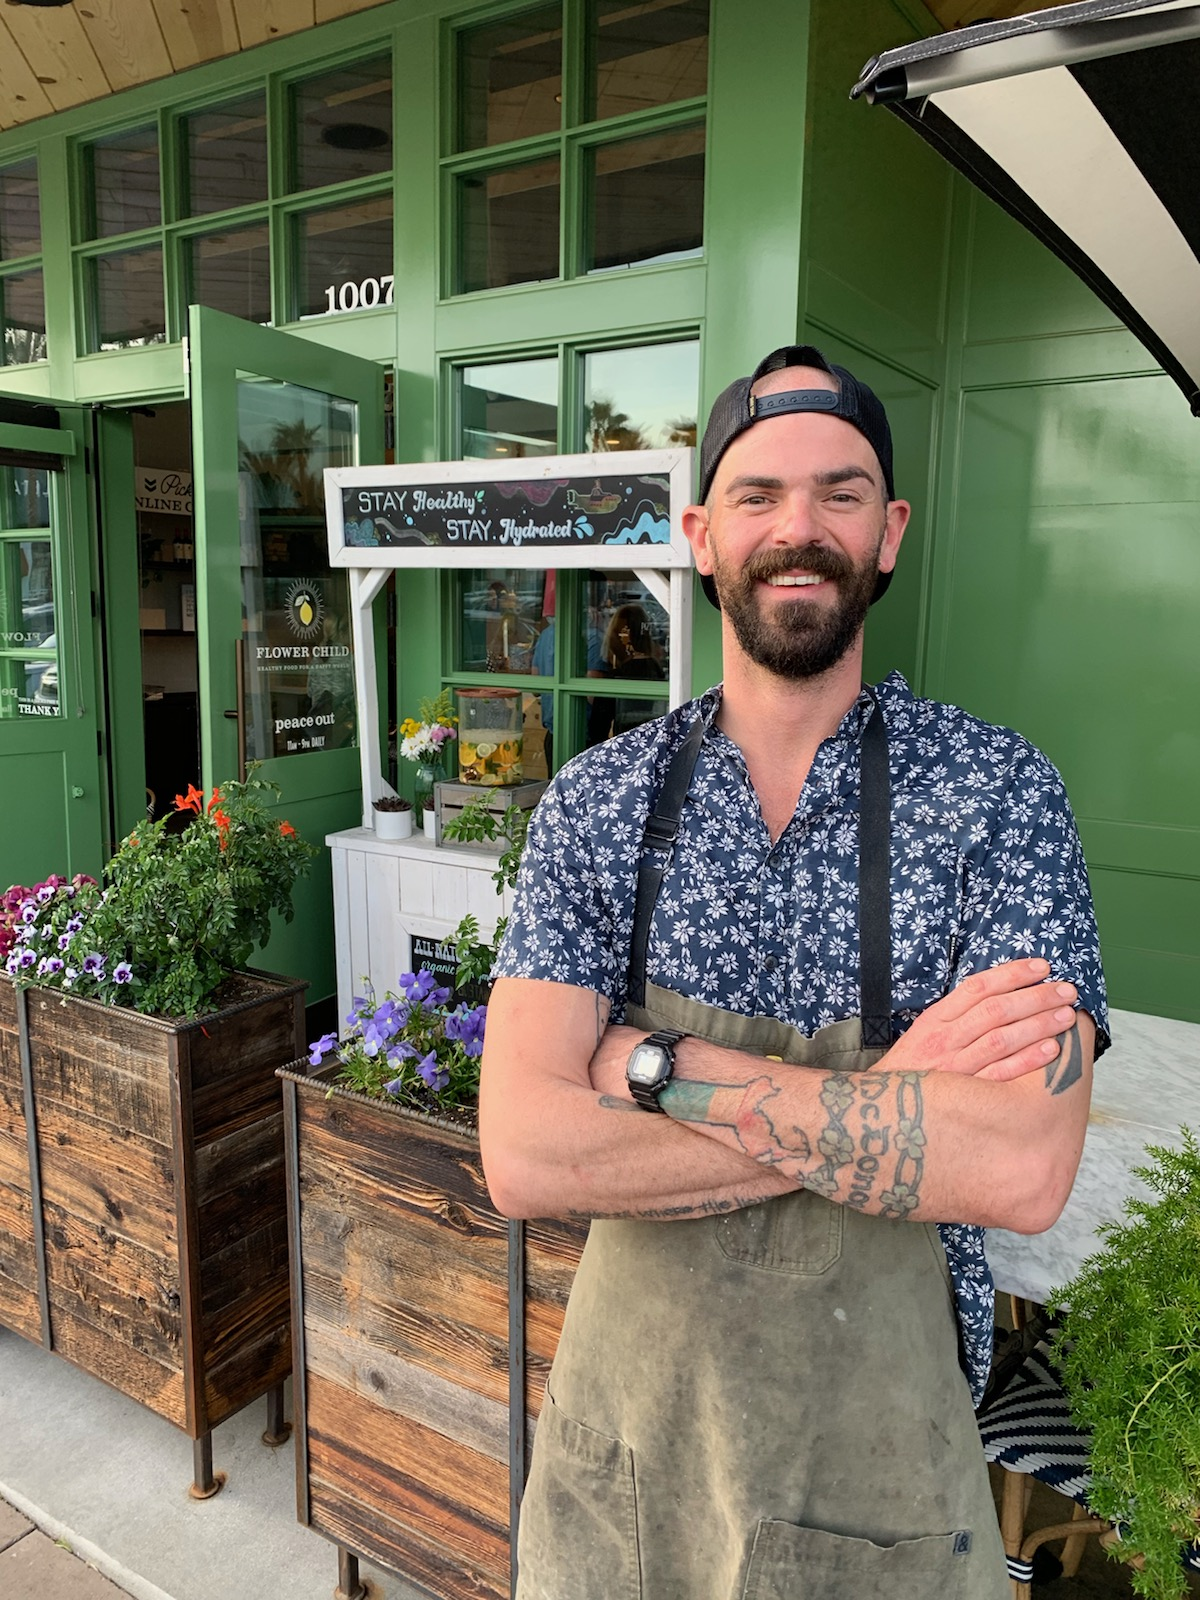 A chef in a print shirt cross his arms